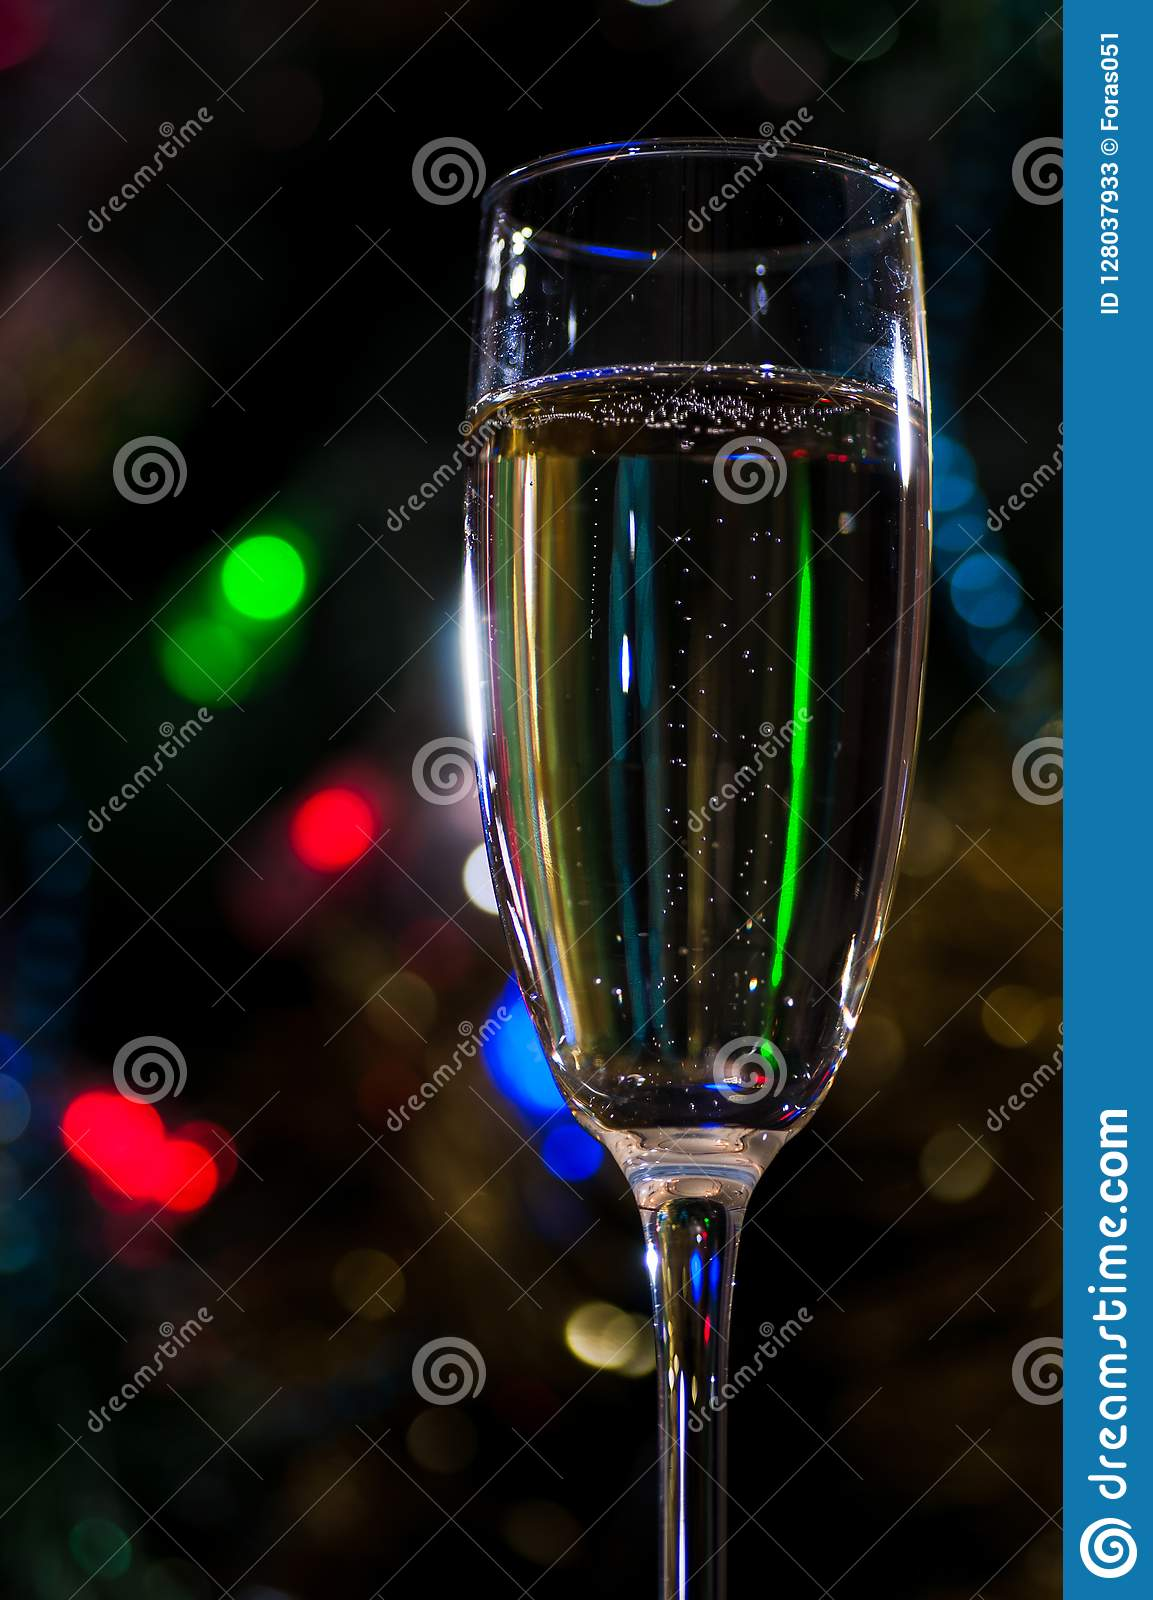 A glass of champagne under the Christmas tree on a dark background